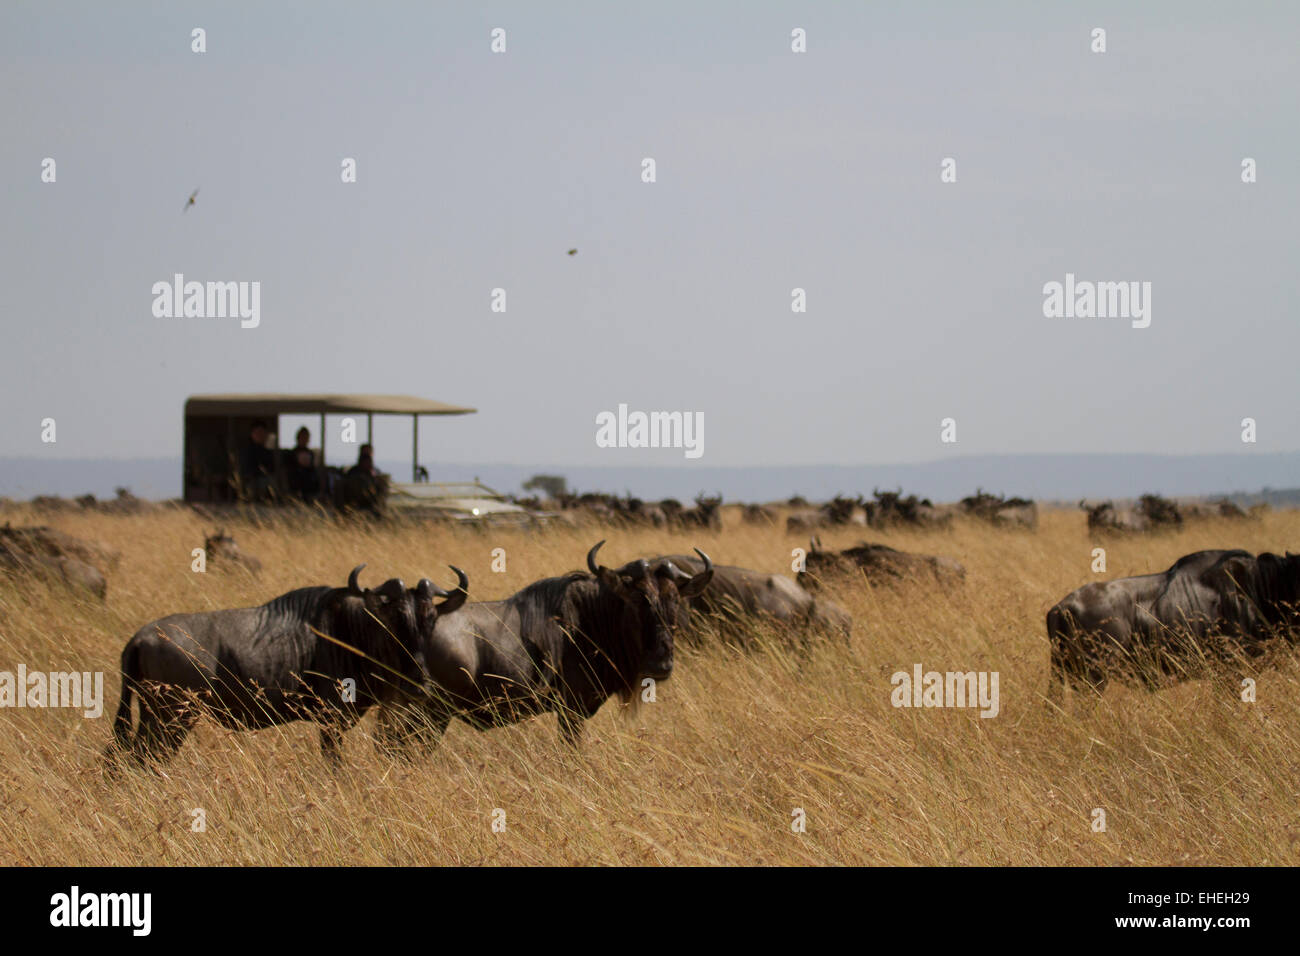 Tourists on safari viewing the migration in the Serengeti - Stock Image